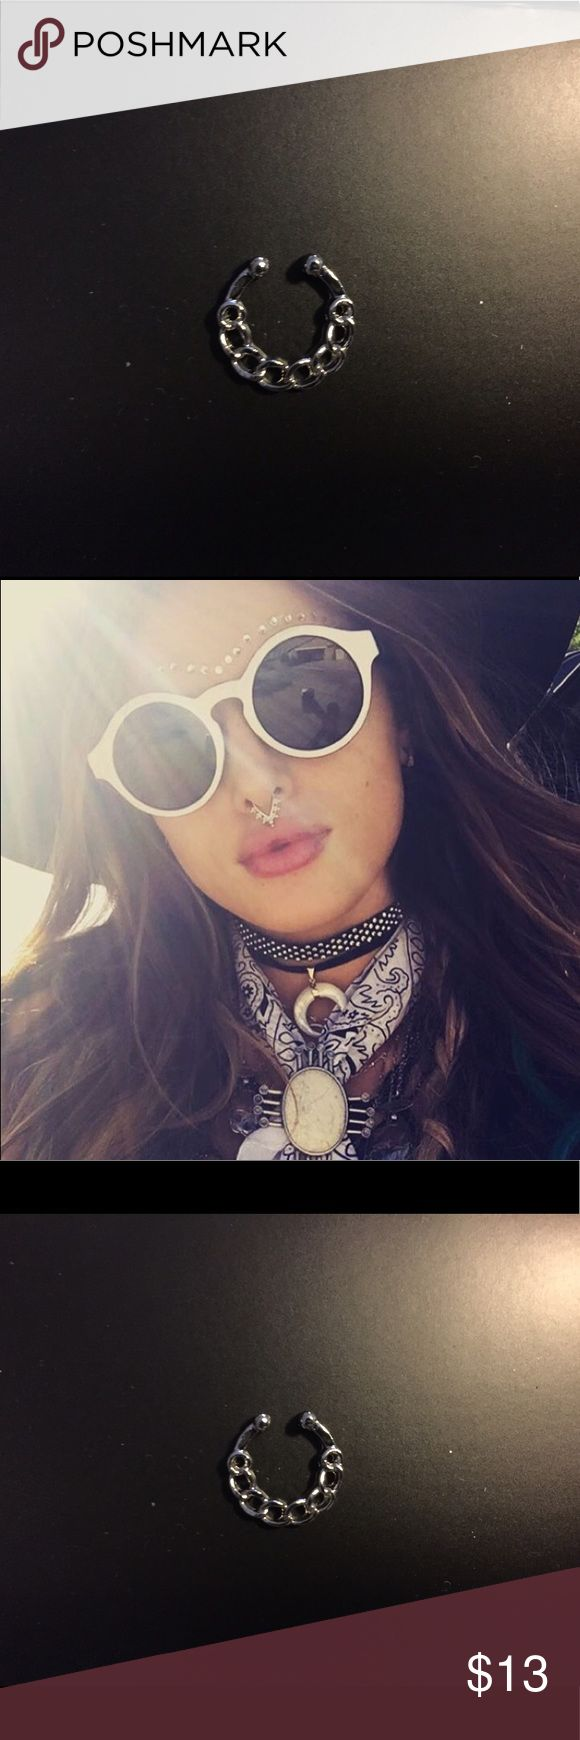 """🆕Silver Fake Septum/ Bull Nose Ring This new """"it girl"""" accessory piece is both sexy and cool. Great quality ring for the price. Brand new and fully adjustable. Will be stocking many styles so message if you want to bundle any! Free People Accessories"""